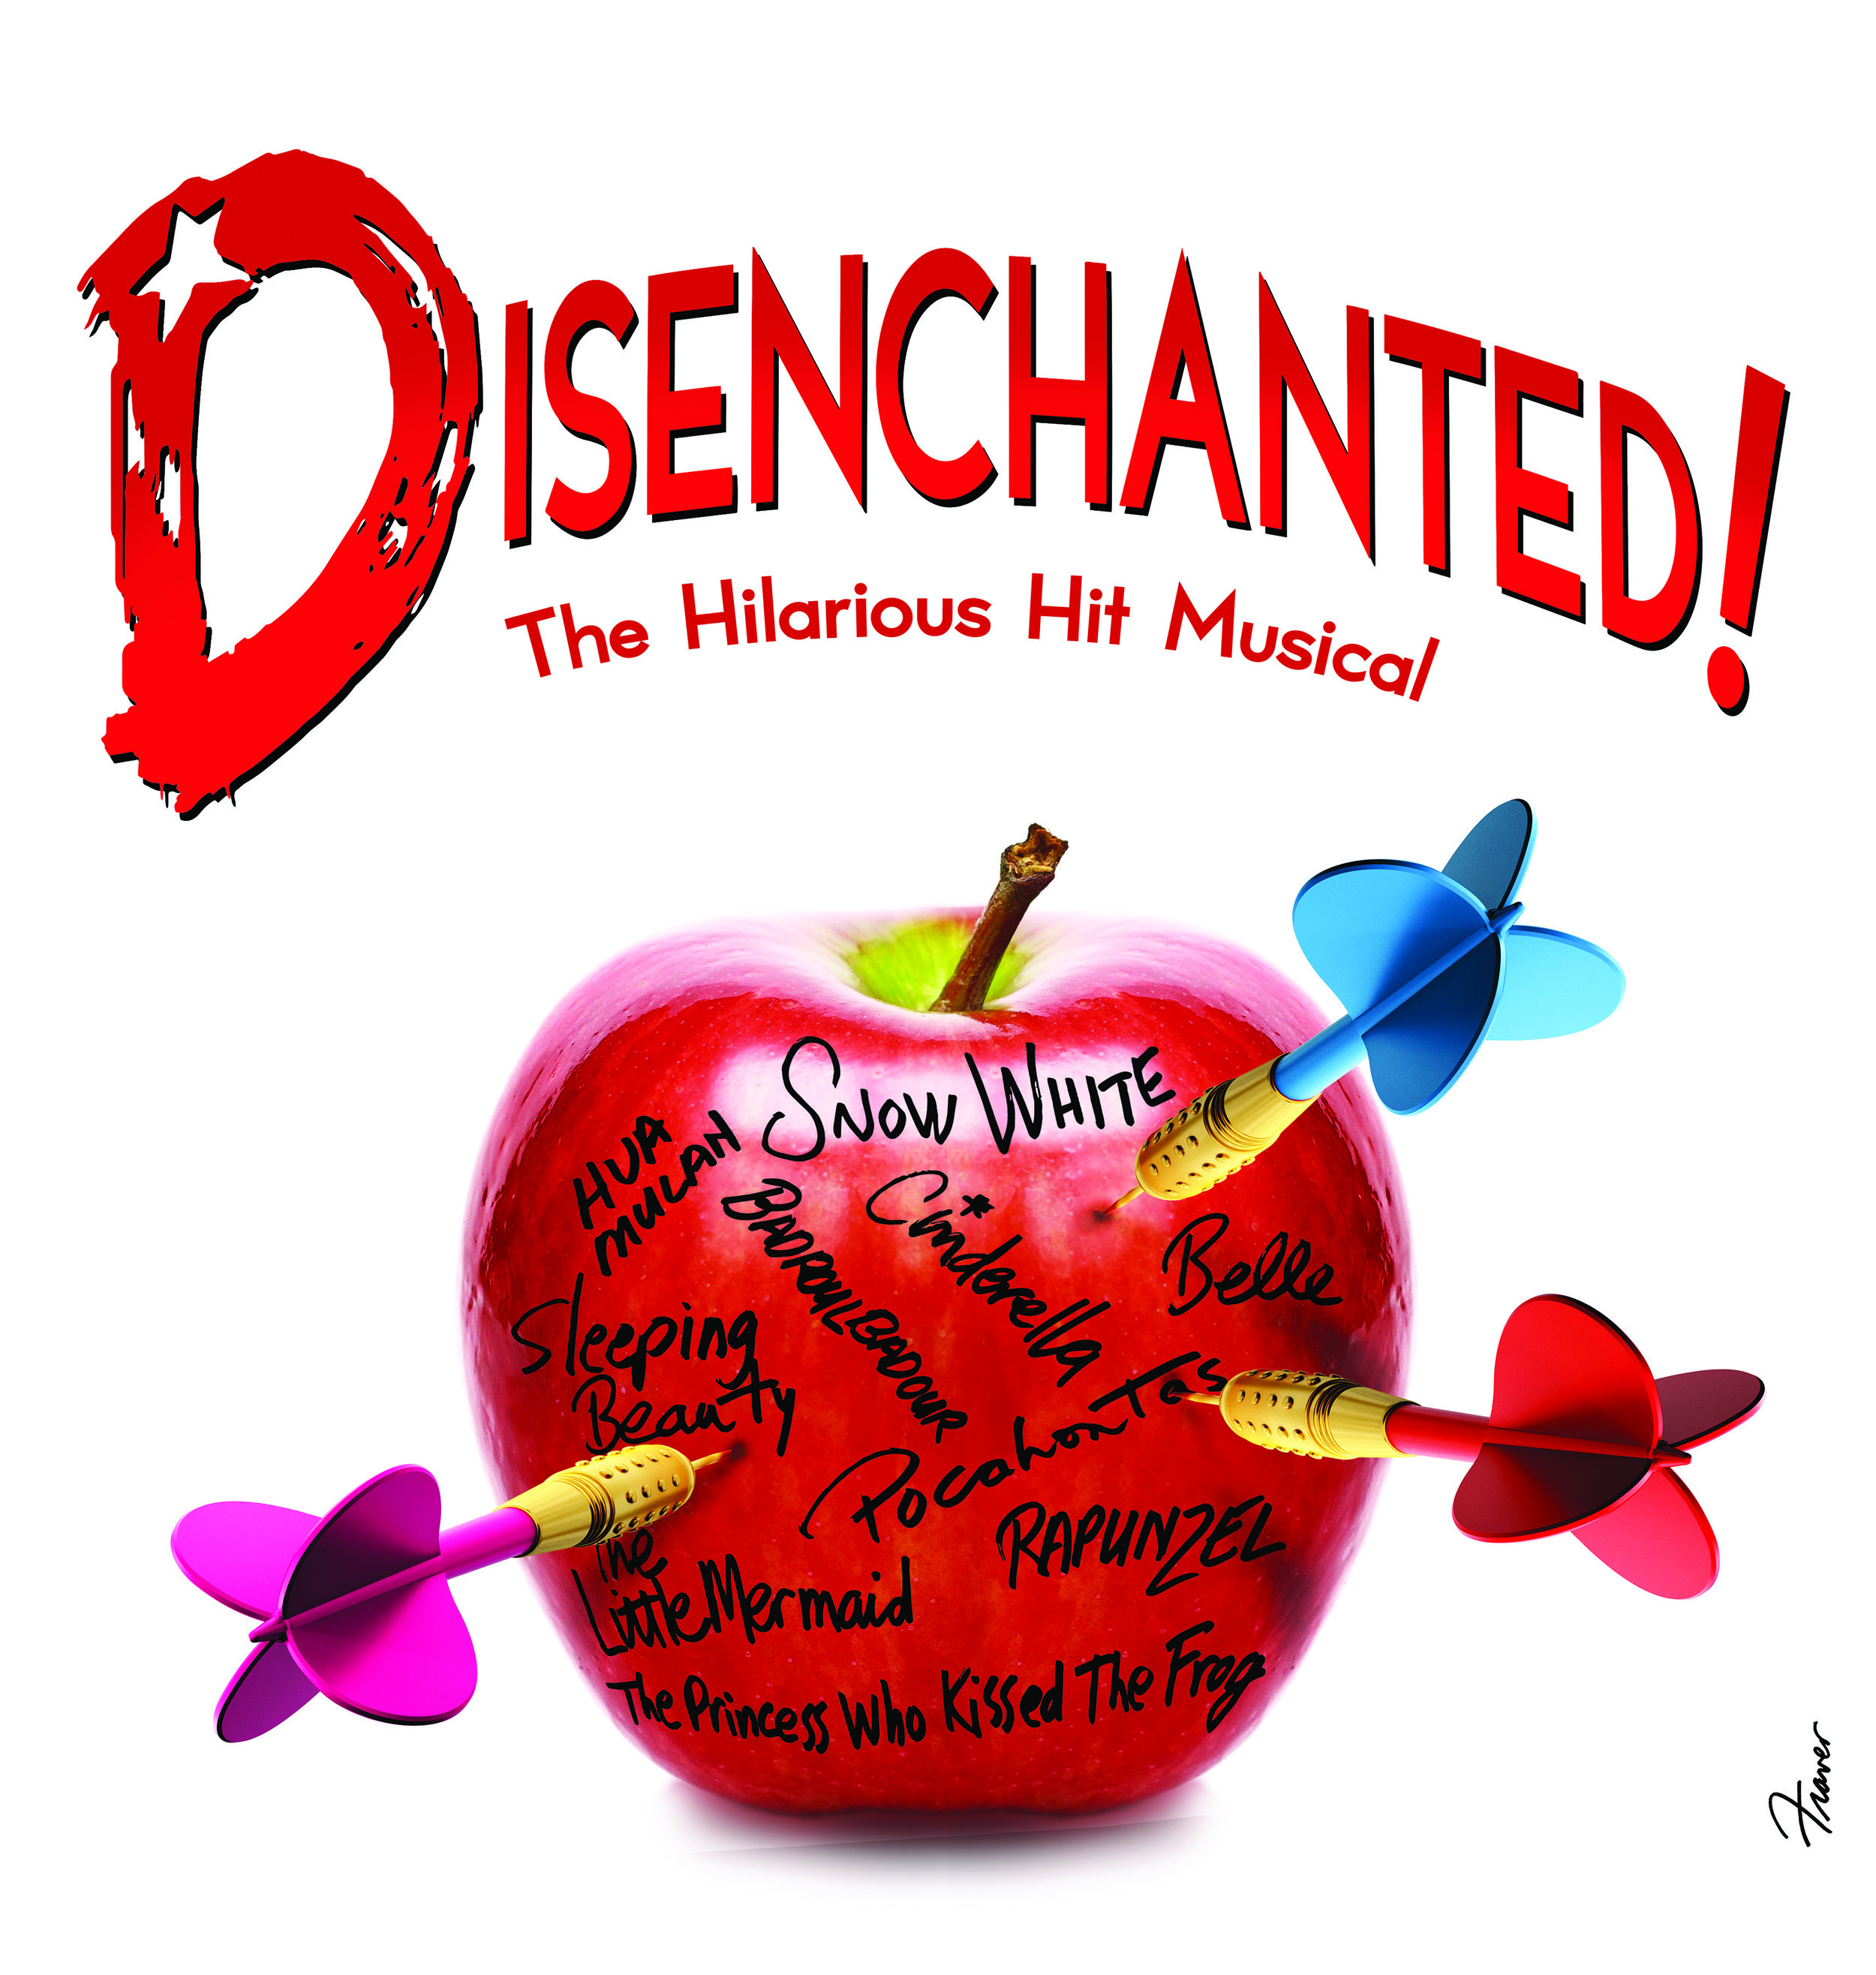 Disenchanted - 29 June - 14 July 2018Poisoned apples. Glass slippers. Who needs 'em?!Not Snow White and her posse of disenchanted princesses in the hilarious hit musical that's anything but Grimm. Forget the princesses you think you know – the original storybook heroines have come to life to set the record straight.